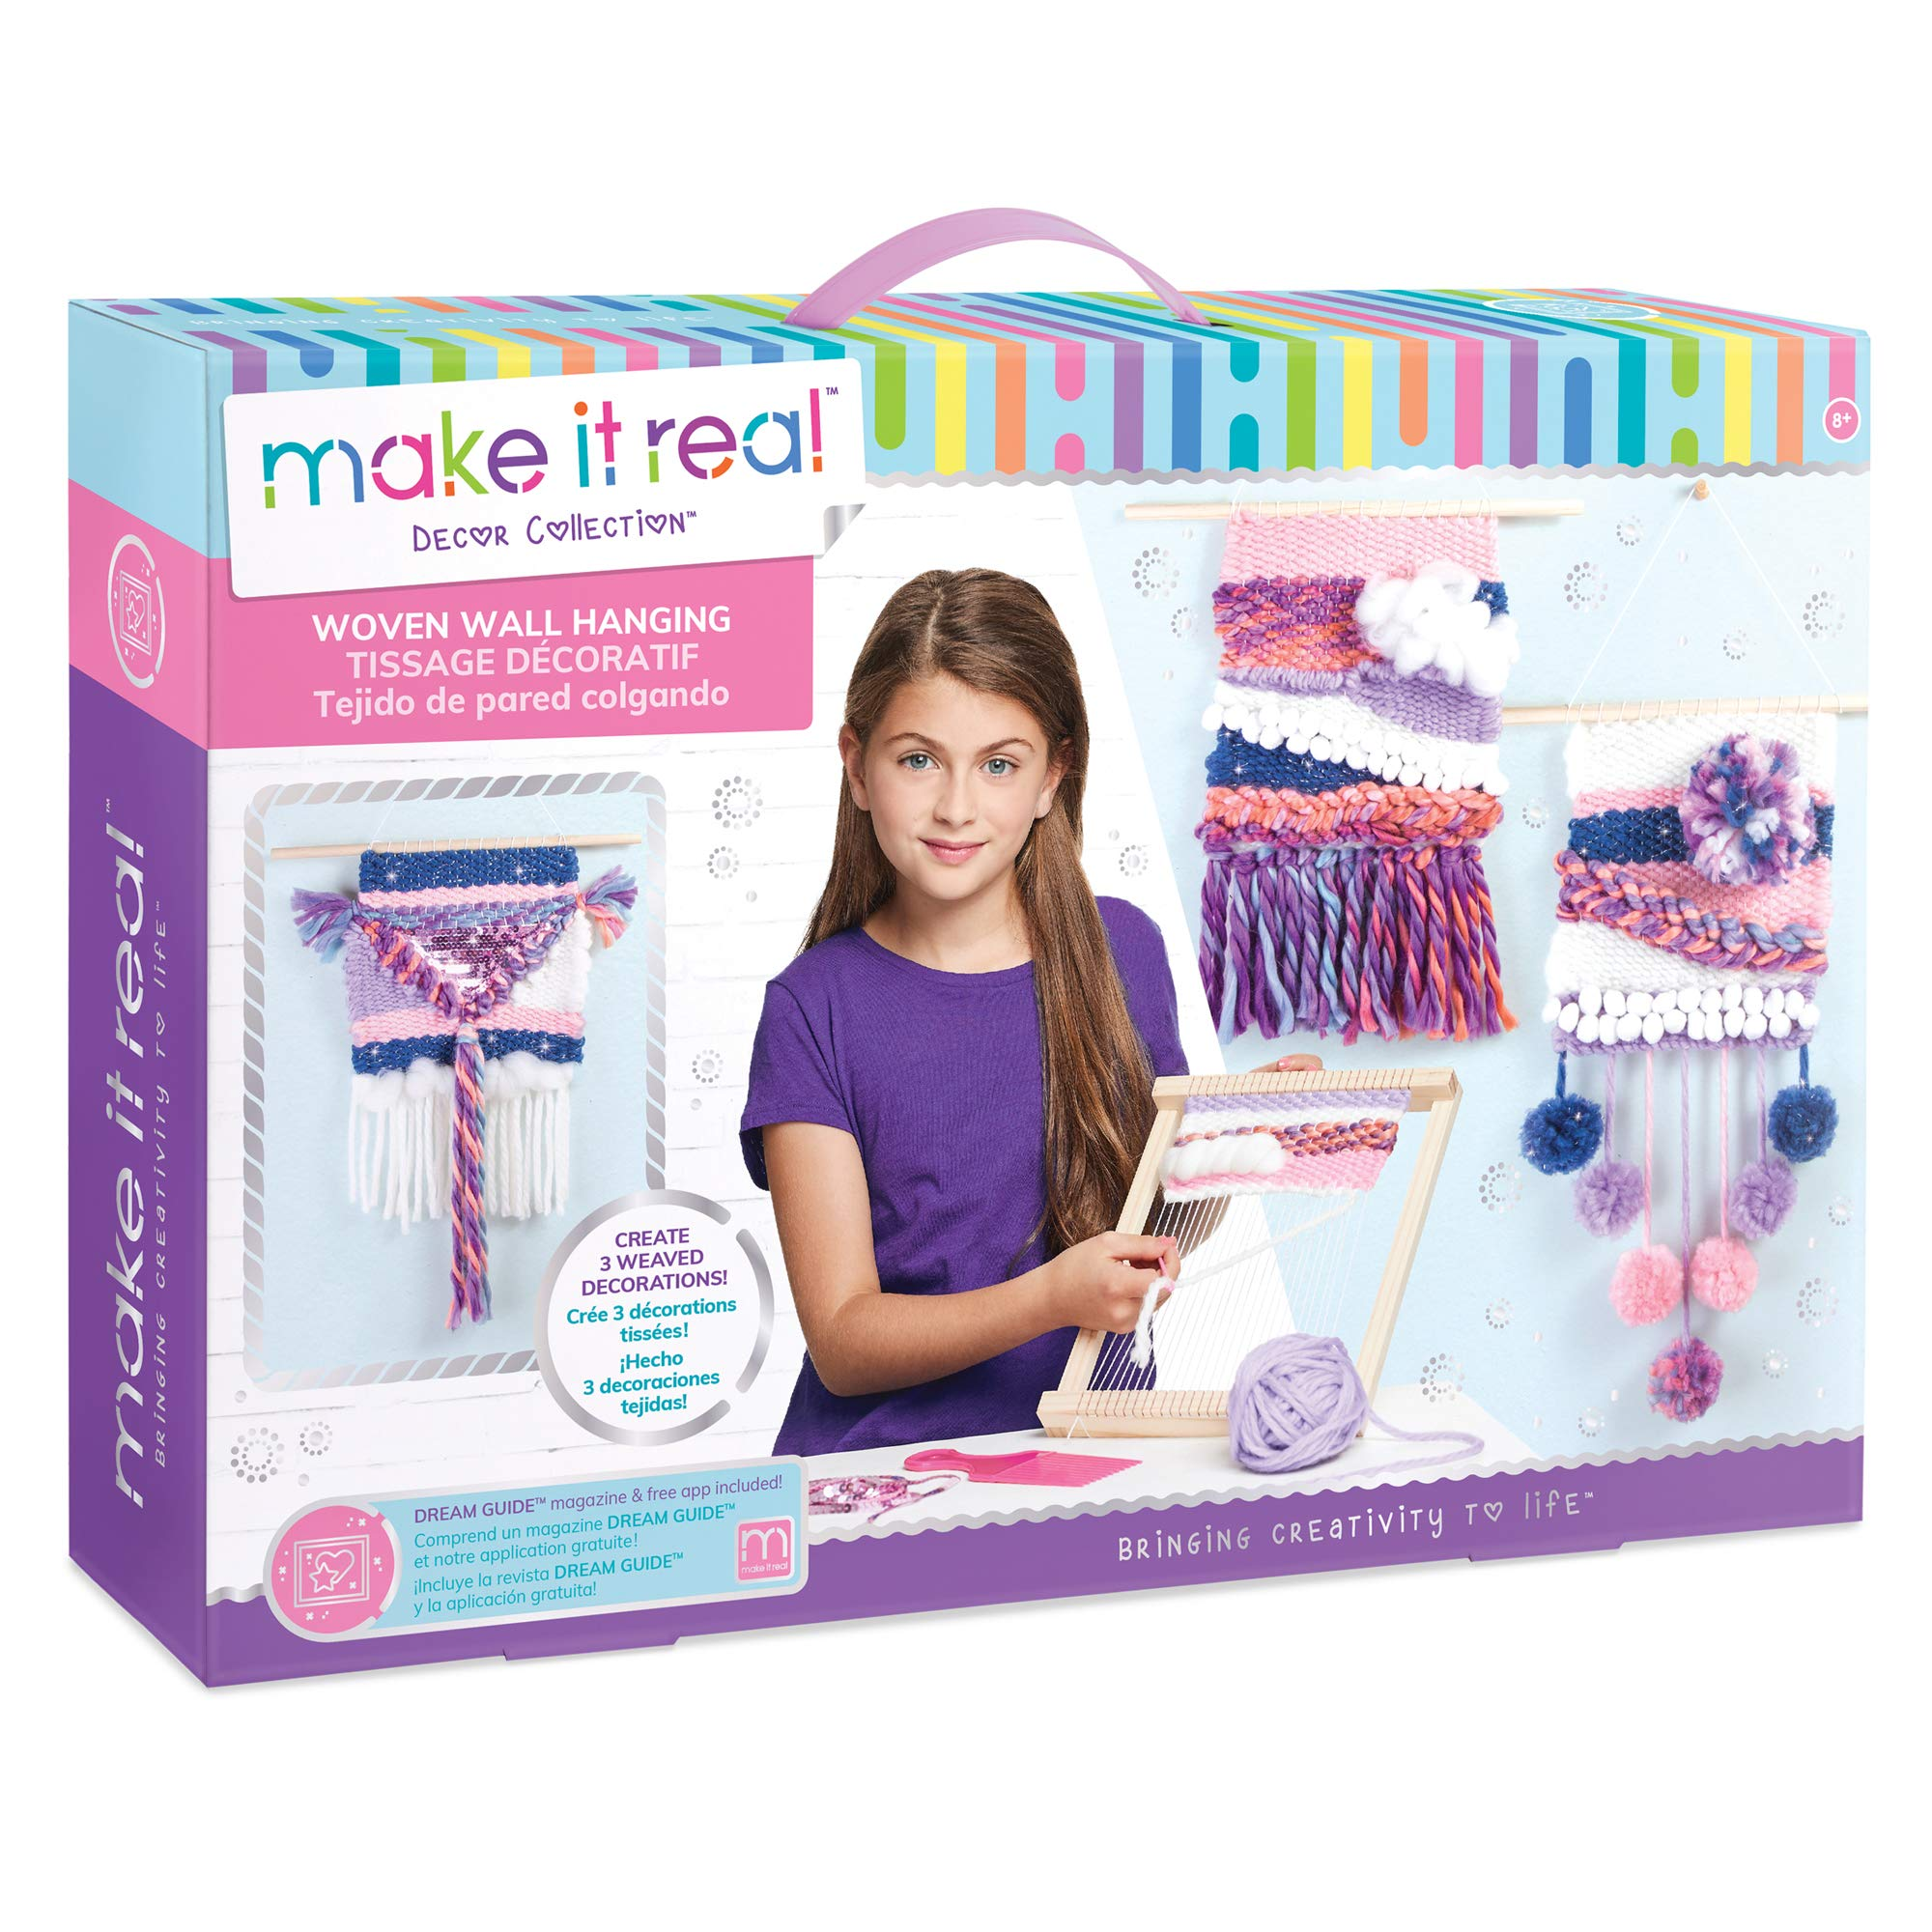 Make It Real - Woven Wall Hanging. Arts and Crafts Kit for Girls Guides Tweens to Weave Their Own Wall Art. Includes Materials for Three Beautiful Hanging Woven Wall Art Pieces